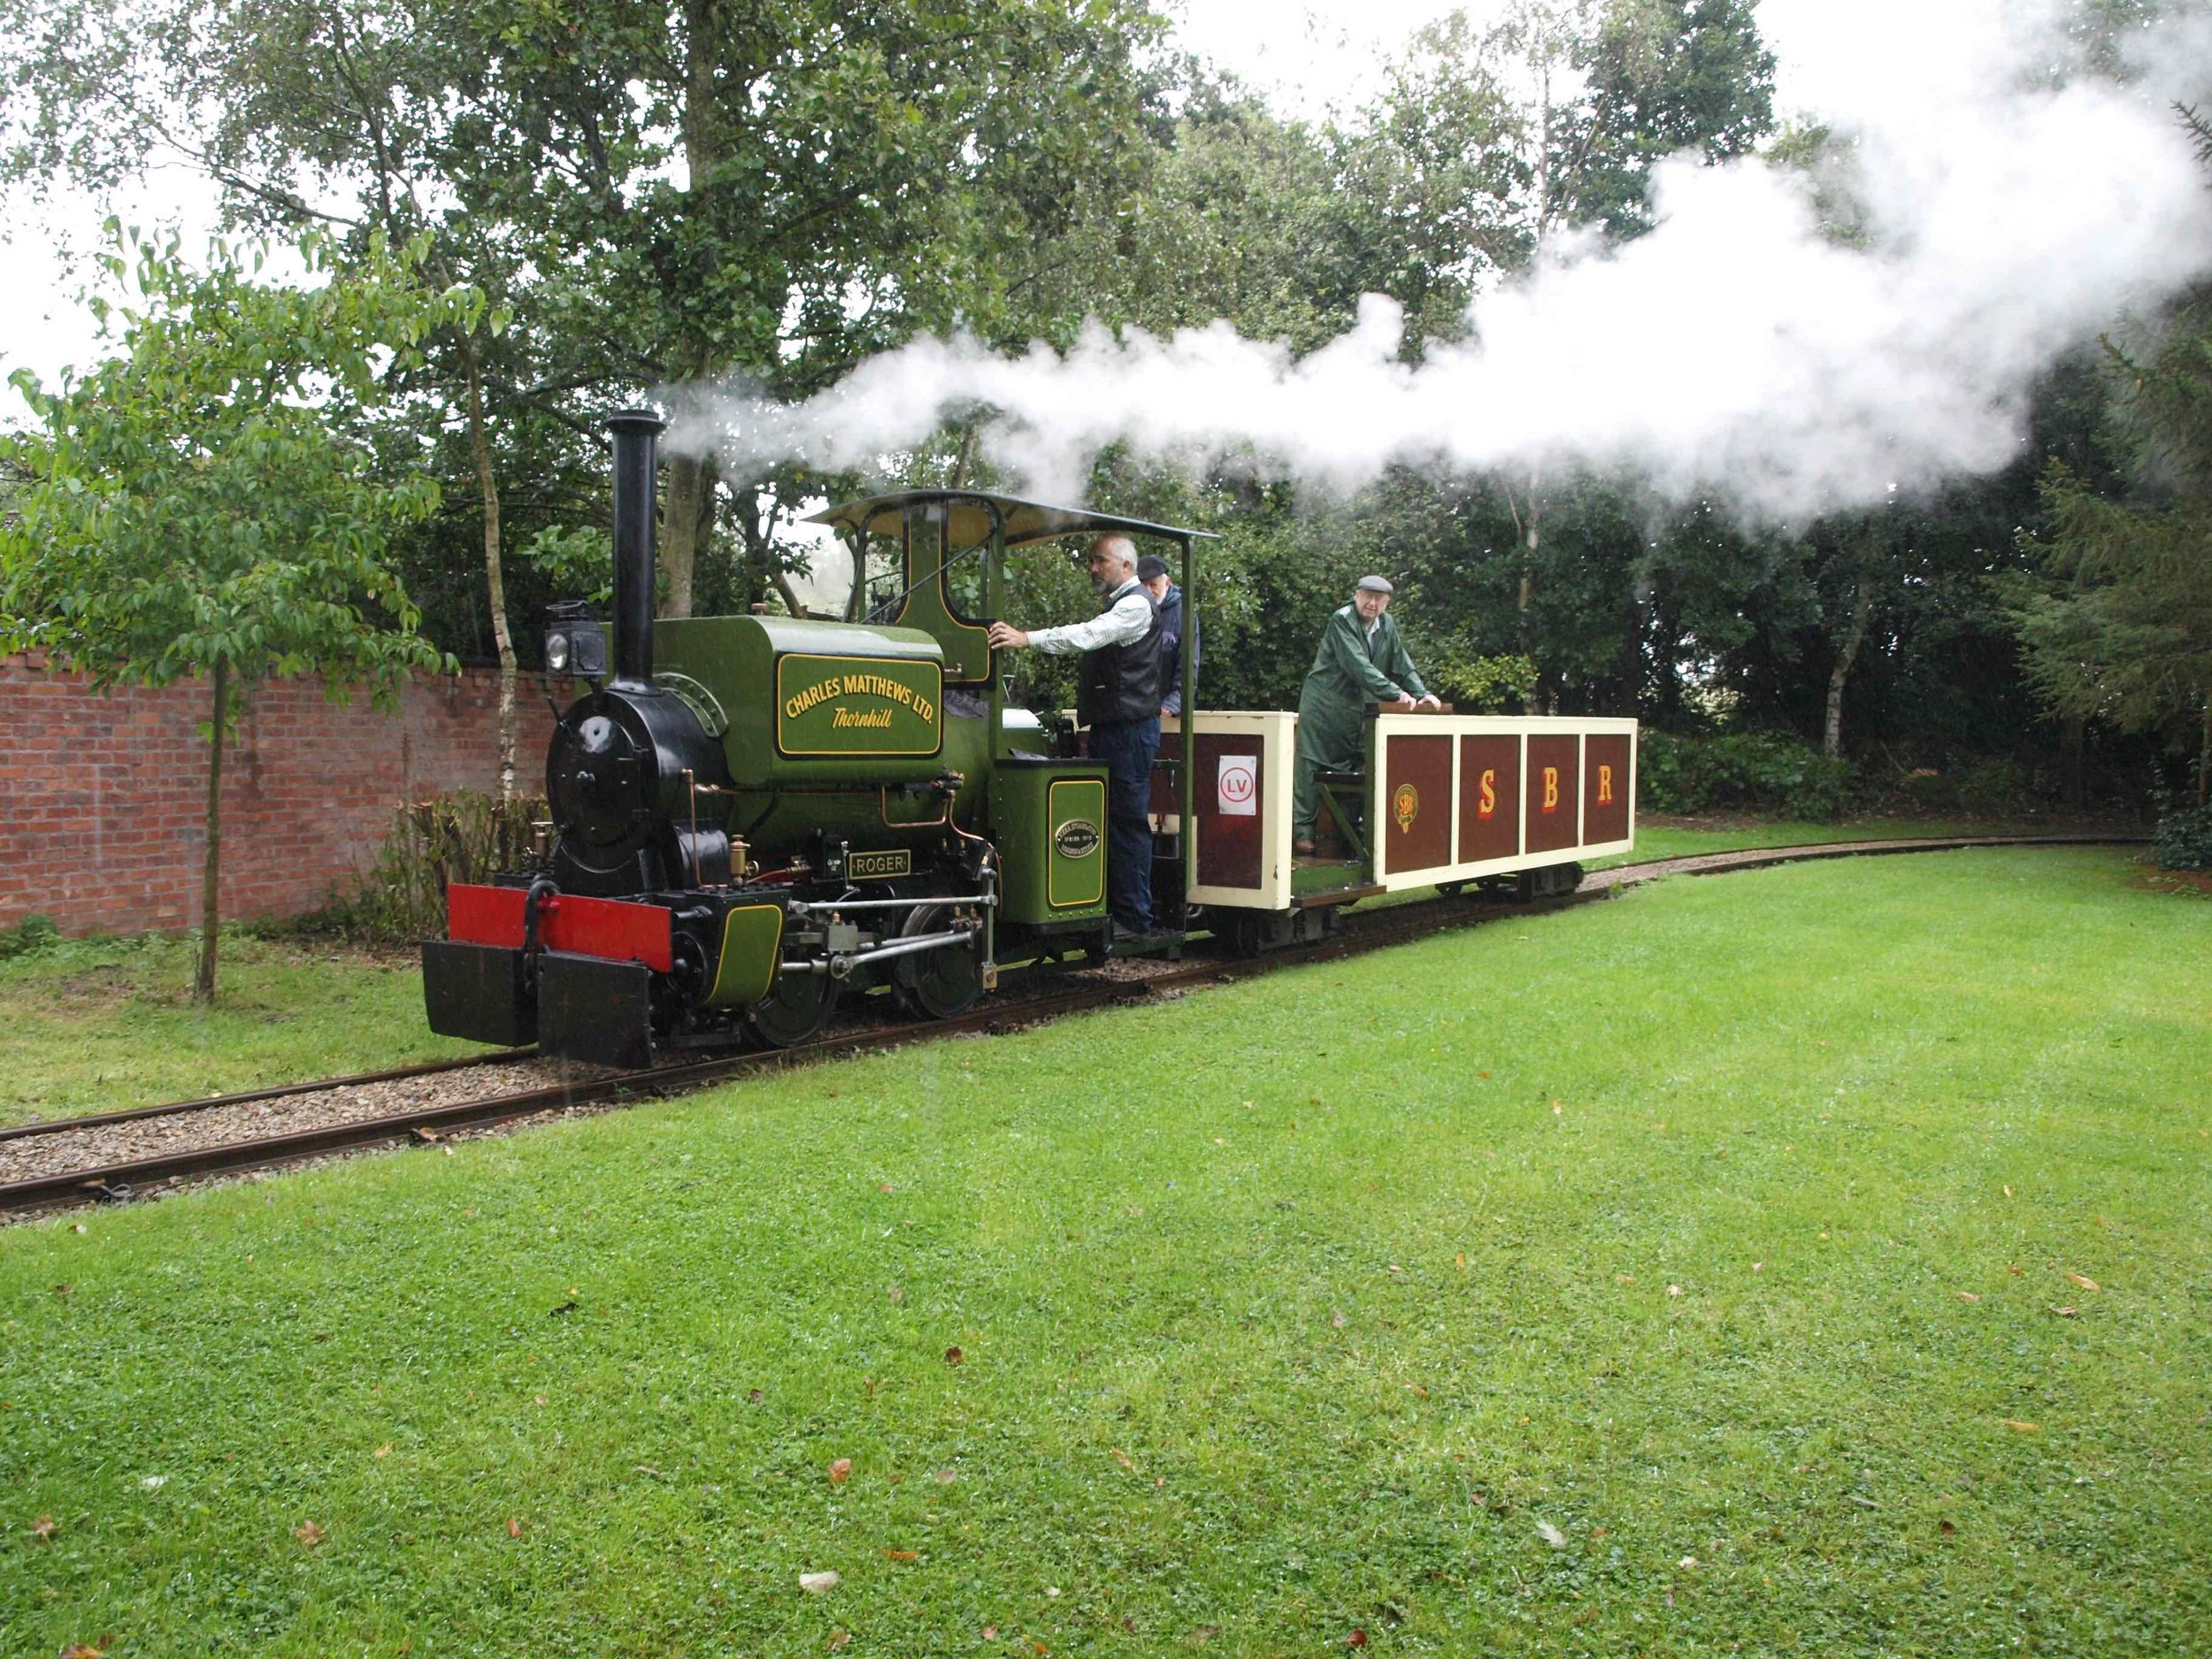 One of the pair of recently announced Kerr Stuart Wrens is No. 3128 'Roger', normally based at the Statfold Barn Railway. MRT